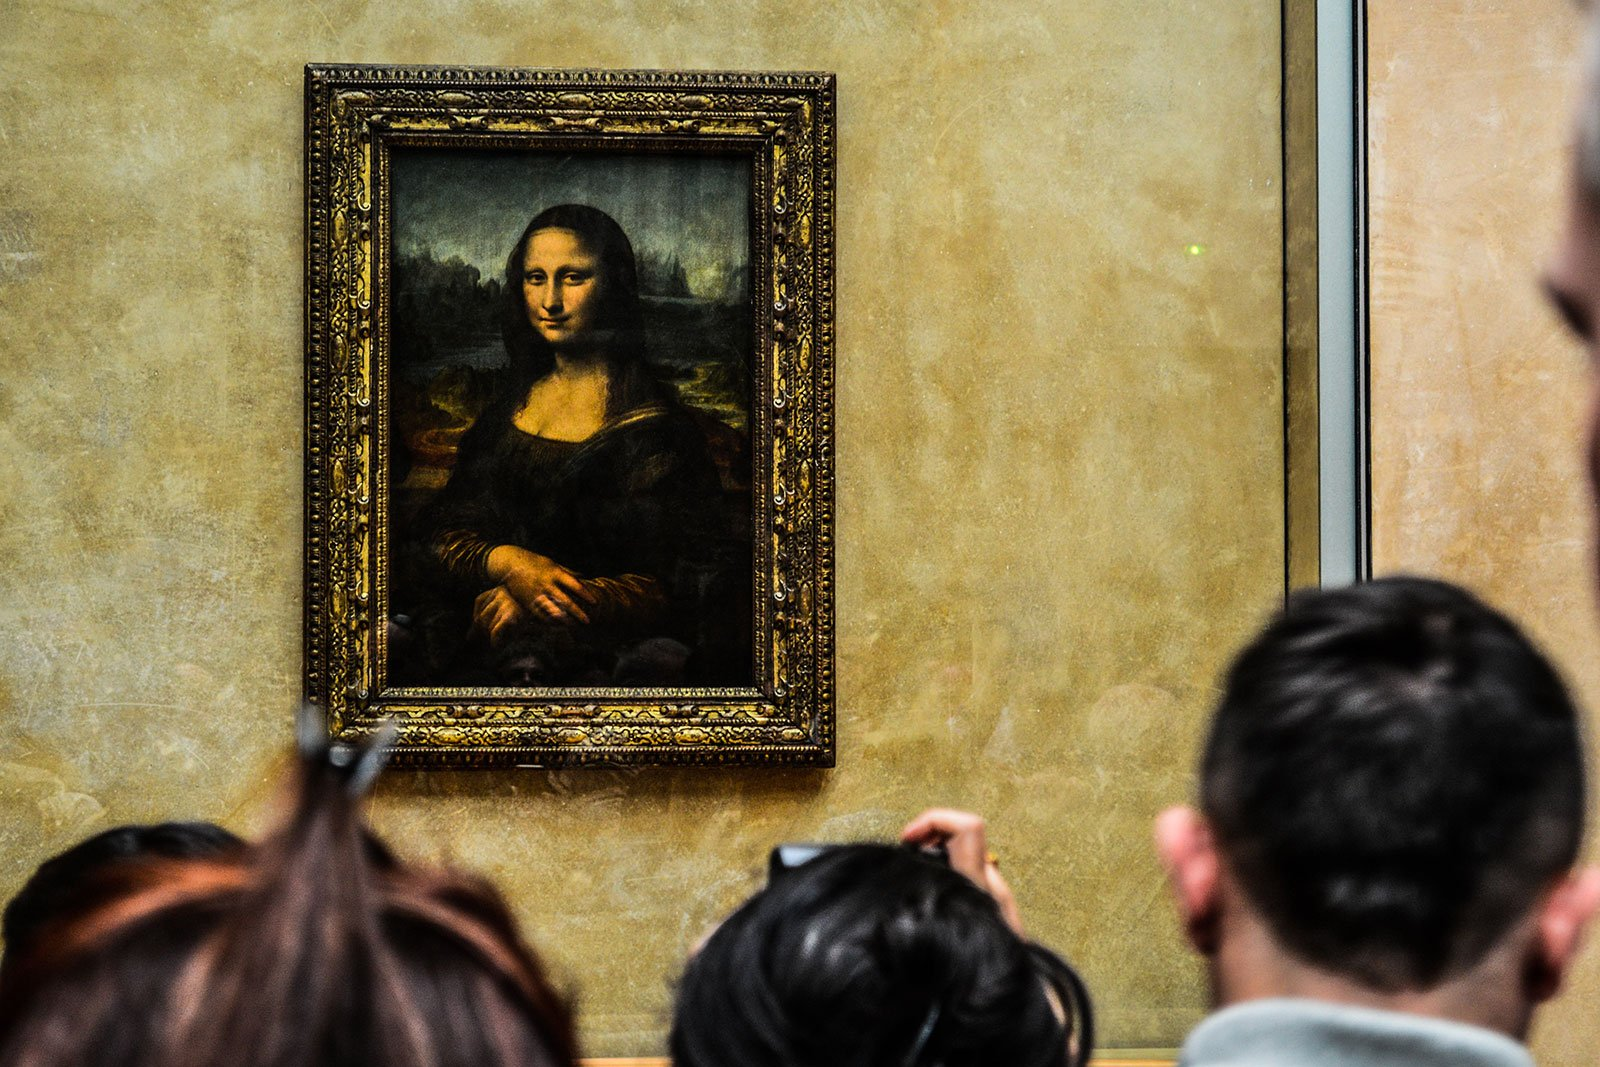 How to see the Mona Lisa in Paris